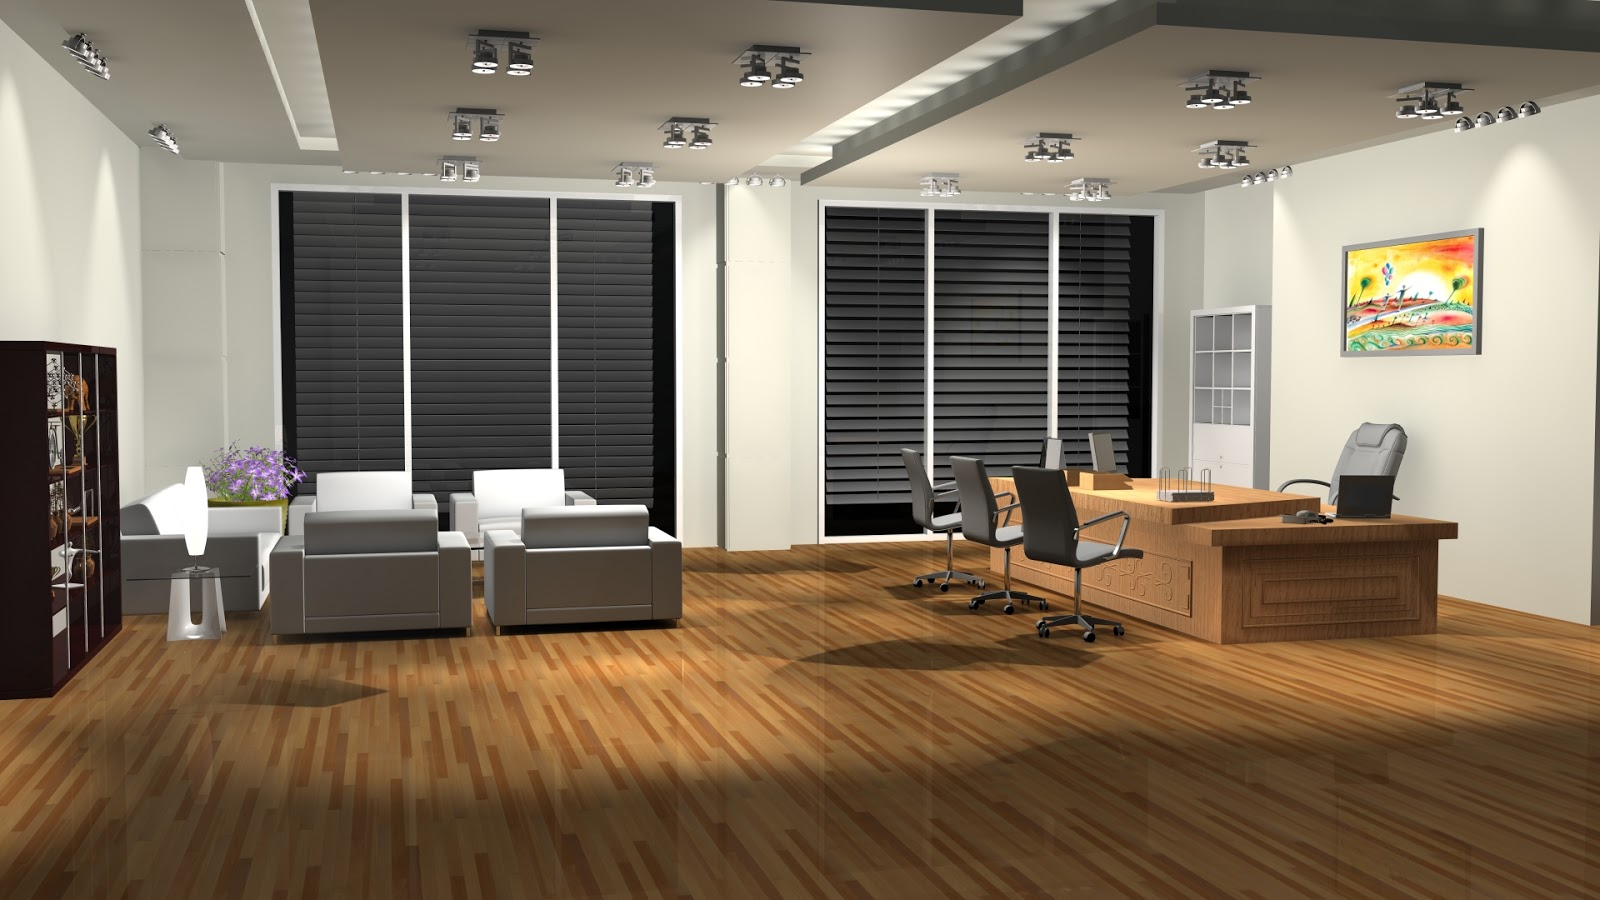 Sajid designs office room 3d interior design 3ds max 3d room design online